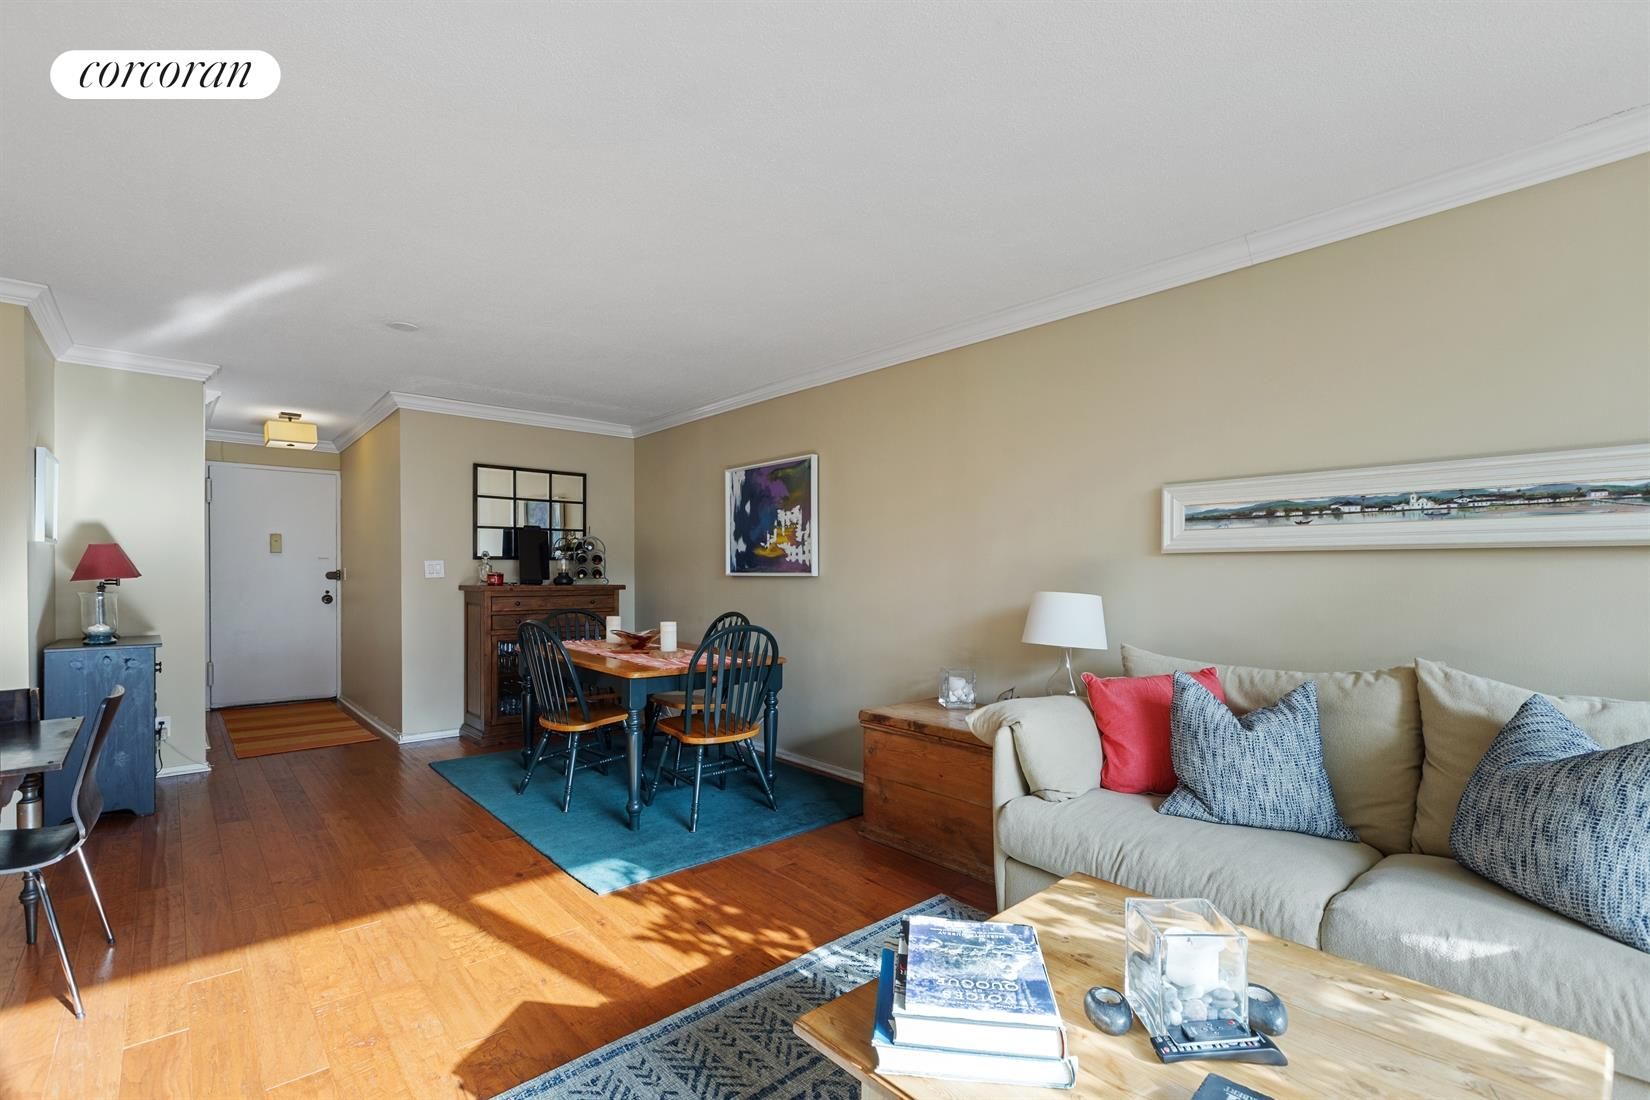 Apartment for sale at 444 East 86th Street, Apt 7D